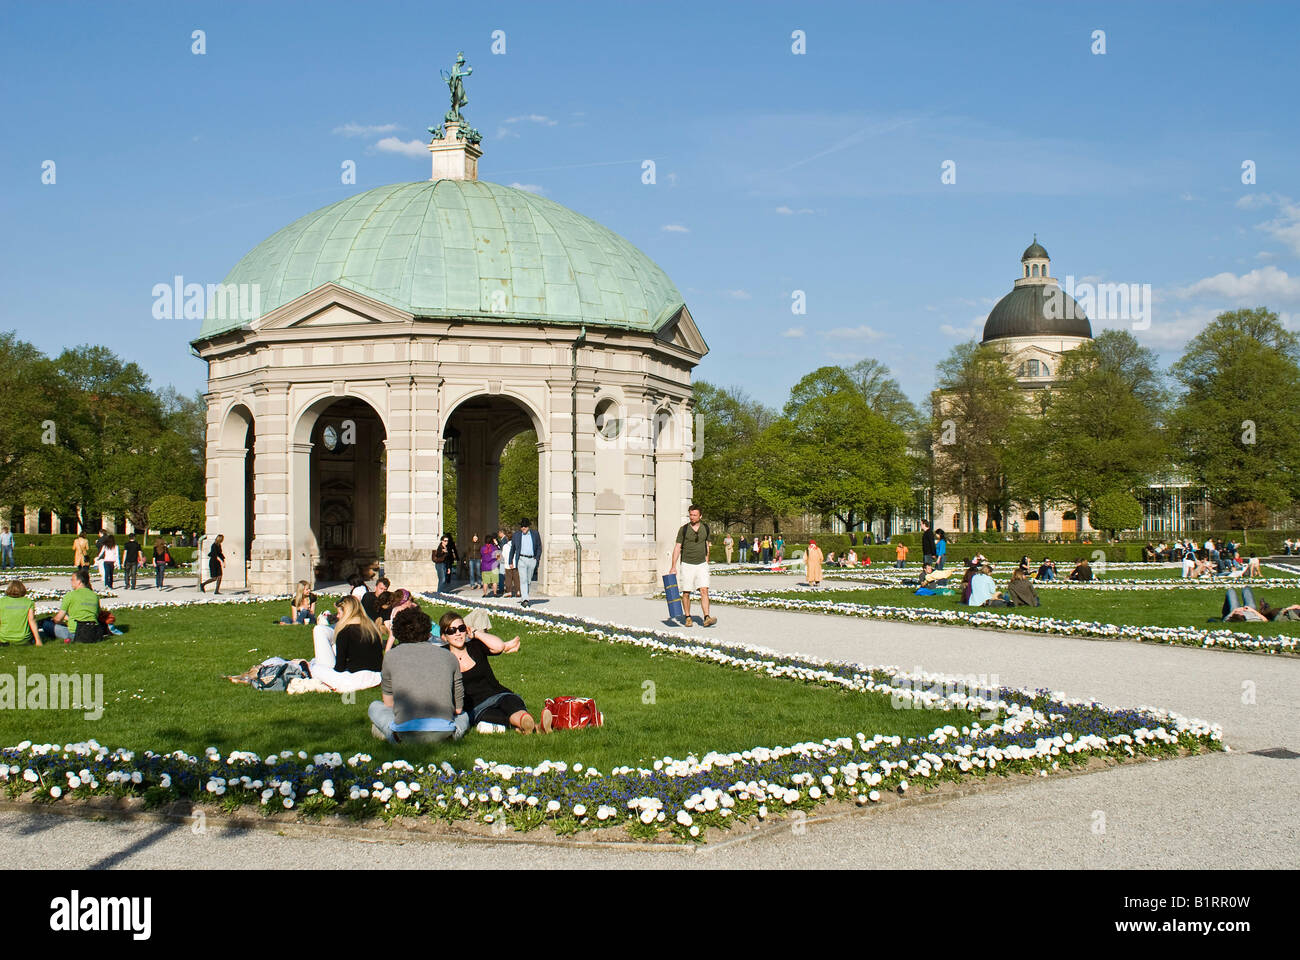 People enjoying the warm spring day in front of the pavilion for the goddess Diana in the Hofgarten, Munich, Bavaria, Stock Photo